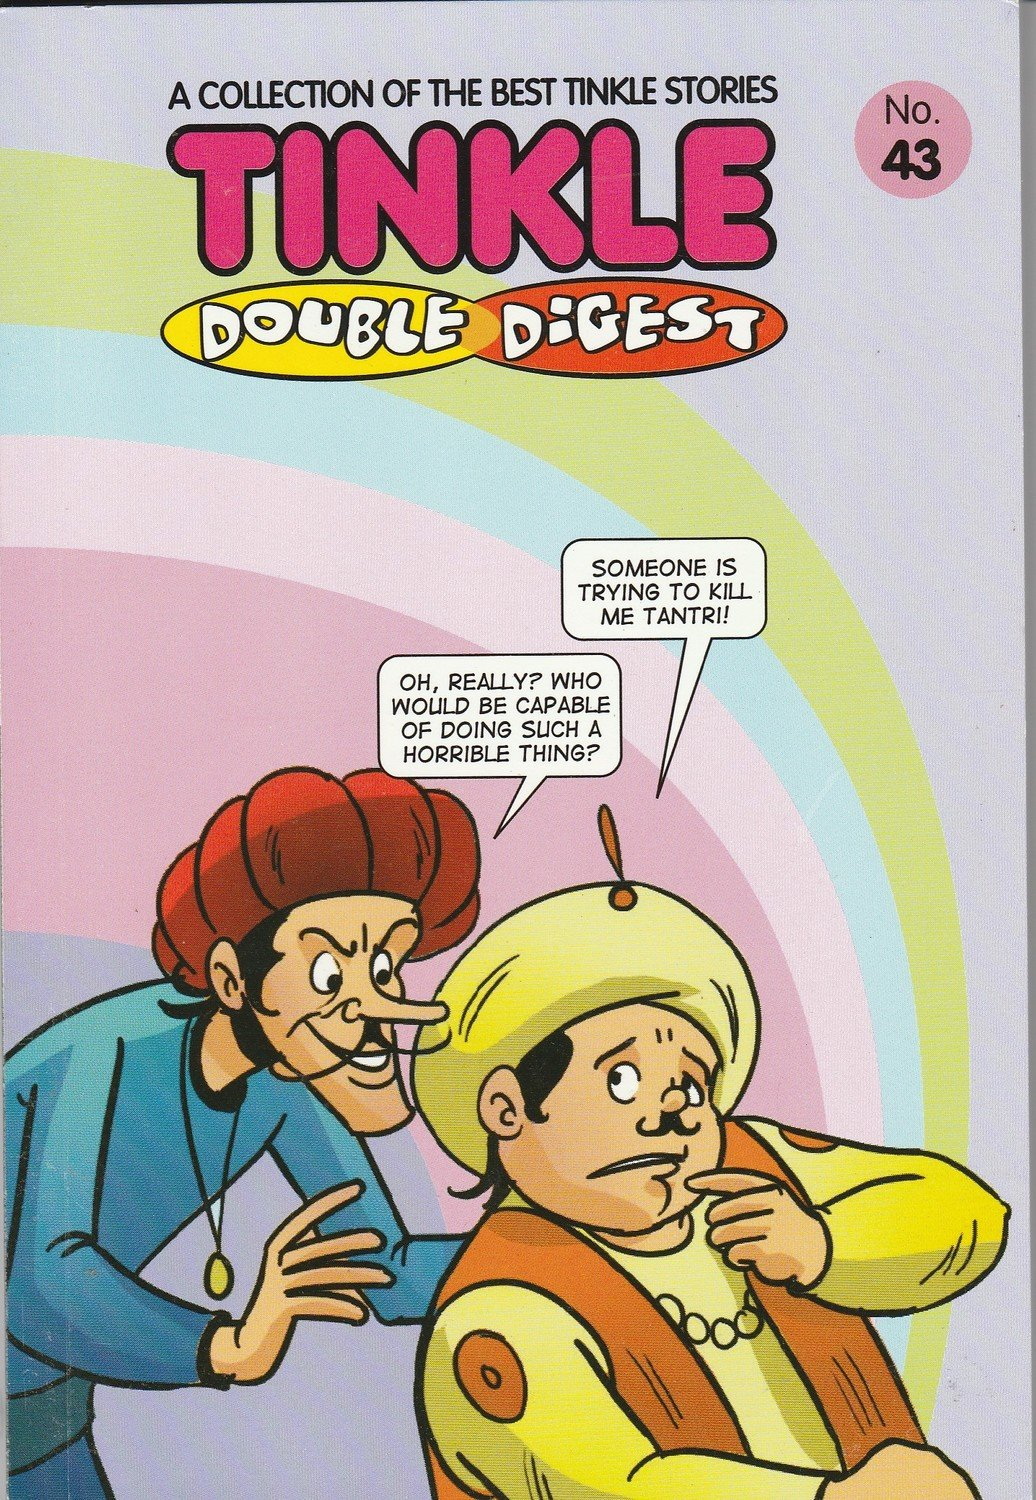 Tinkle Double Digest - No.43